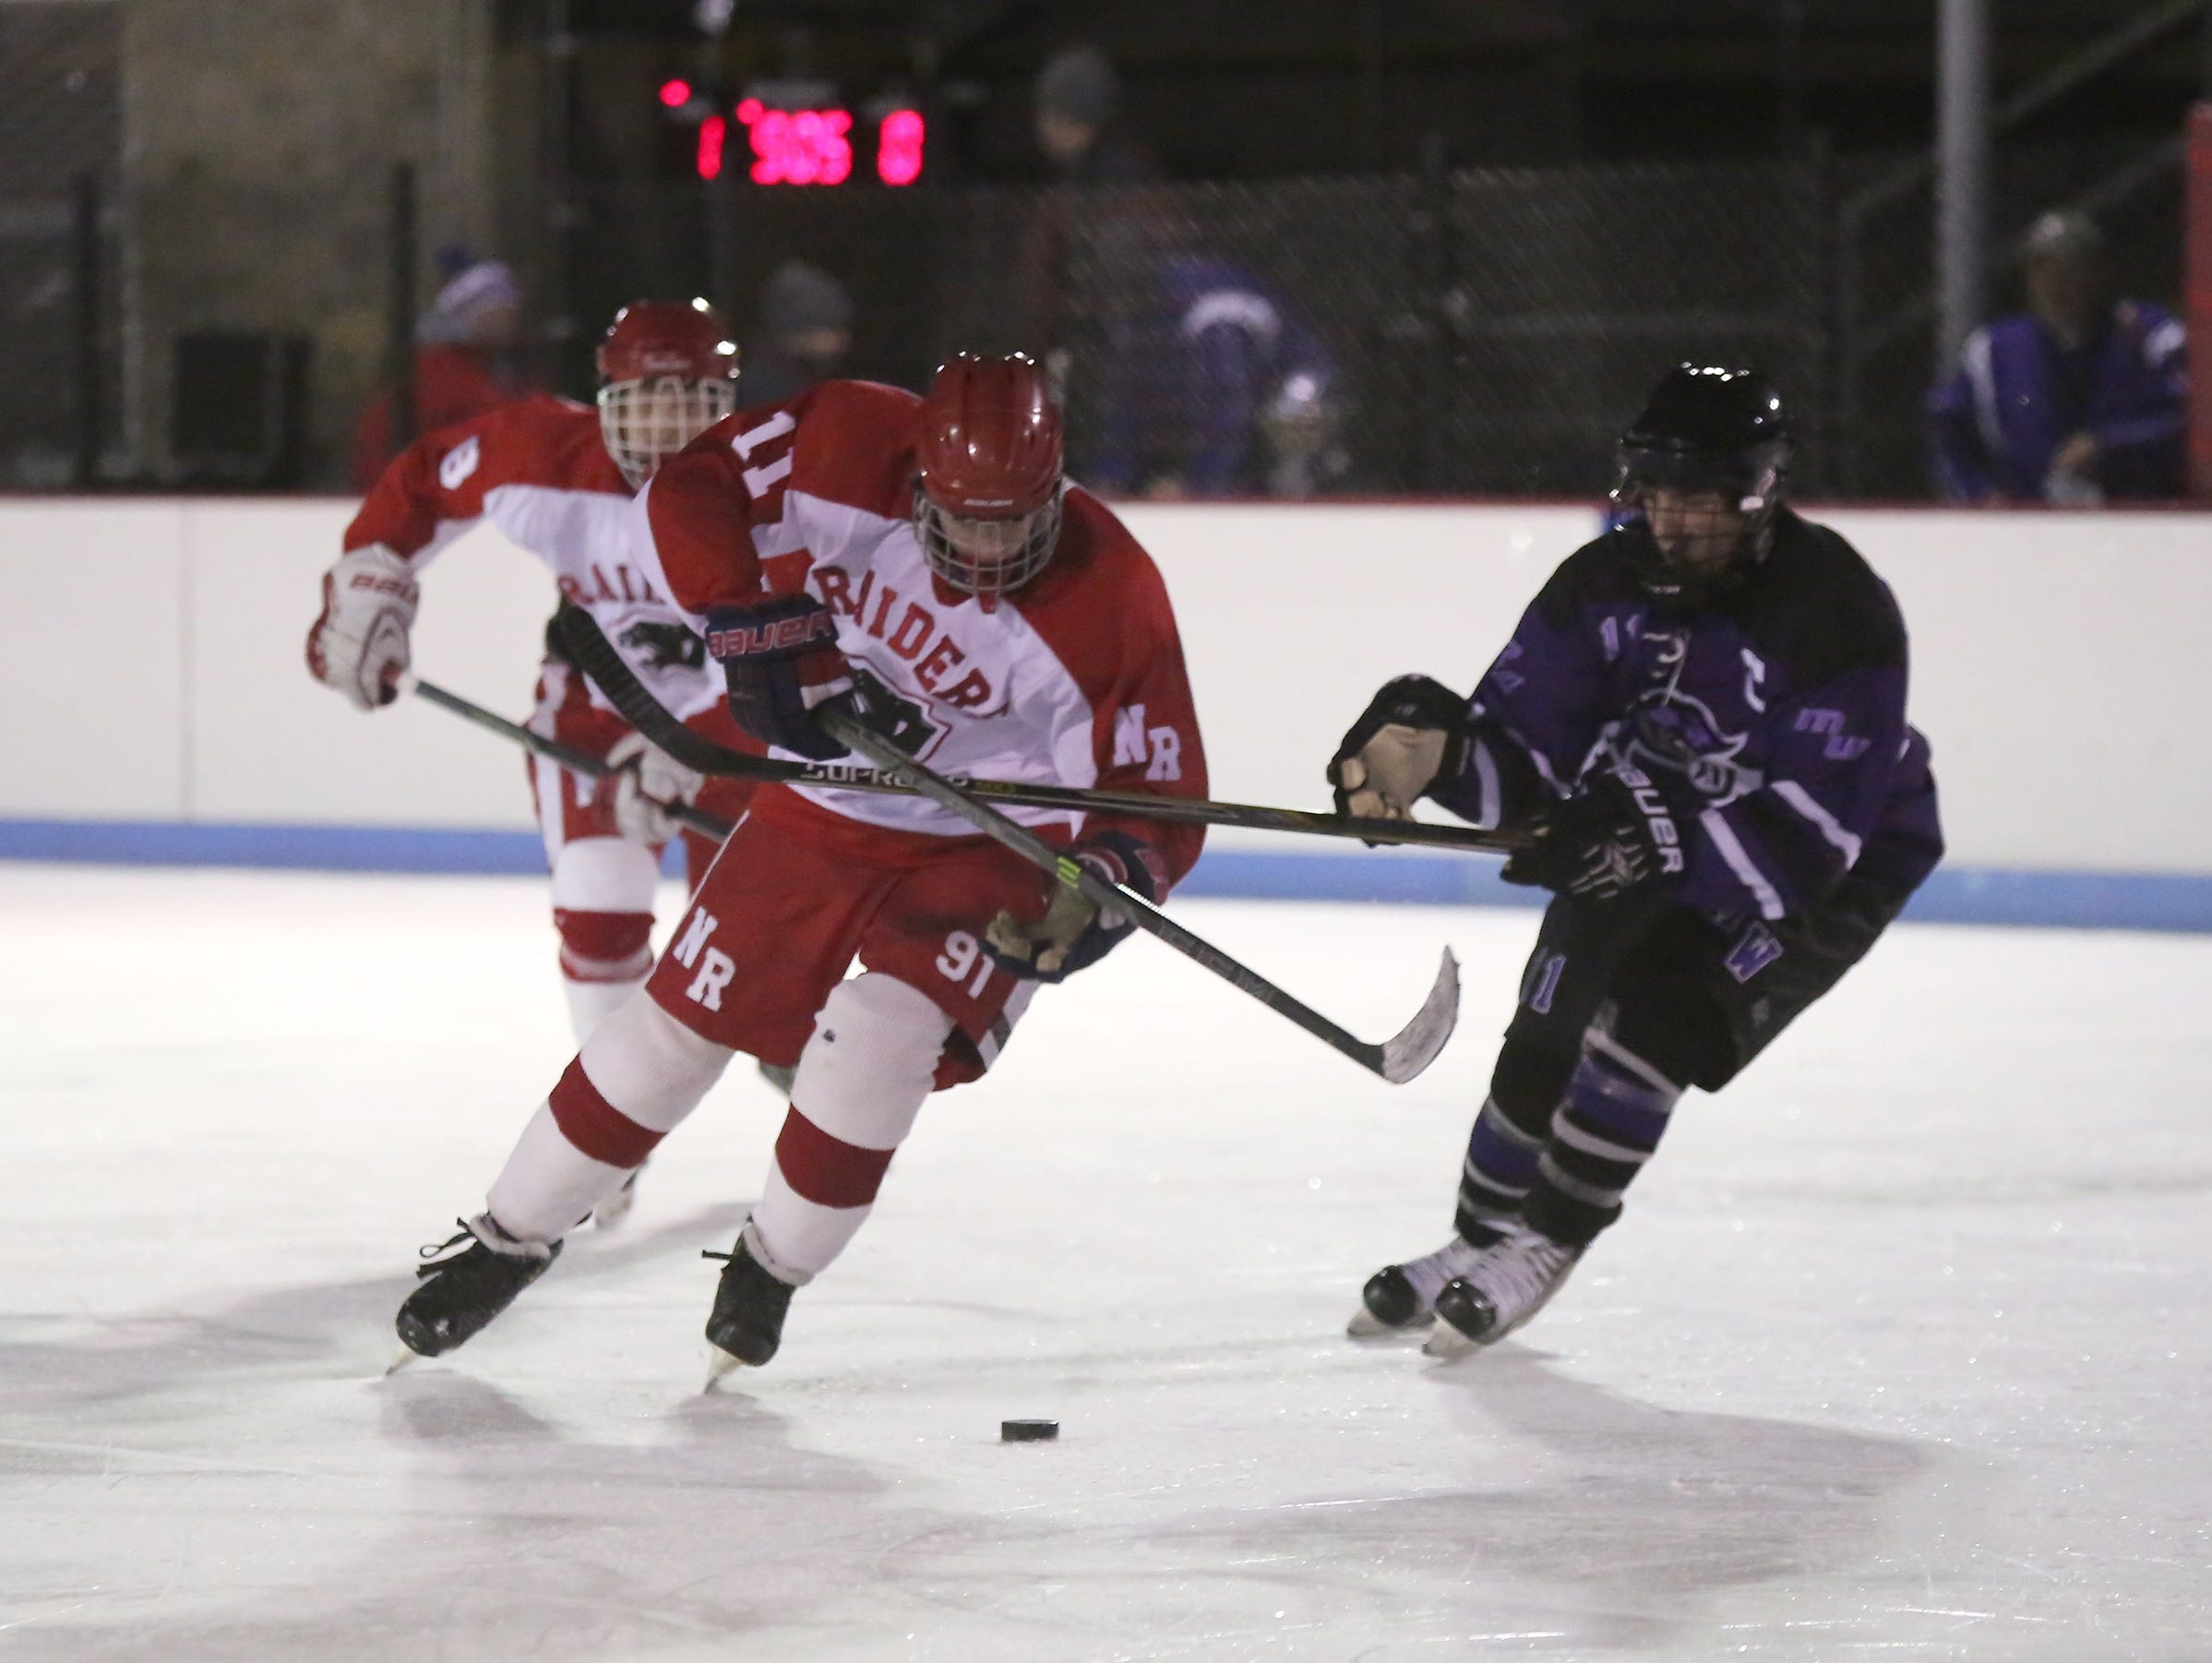 North Rockland's Chris Hilliard (11) works the puck across the blue line during the first annual Winter Classic Hockey Tournament against Monroe-Woodbury at the Bear Mountain Ice Rink in Tompkins Cove on Friday, Dec. 18, 2015.